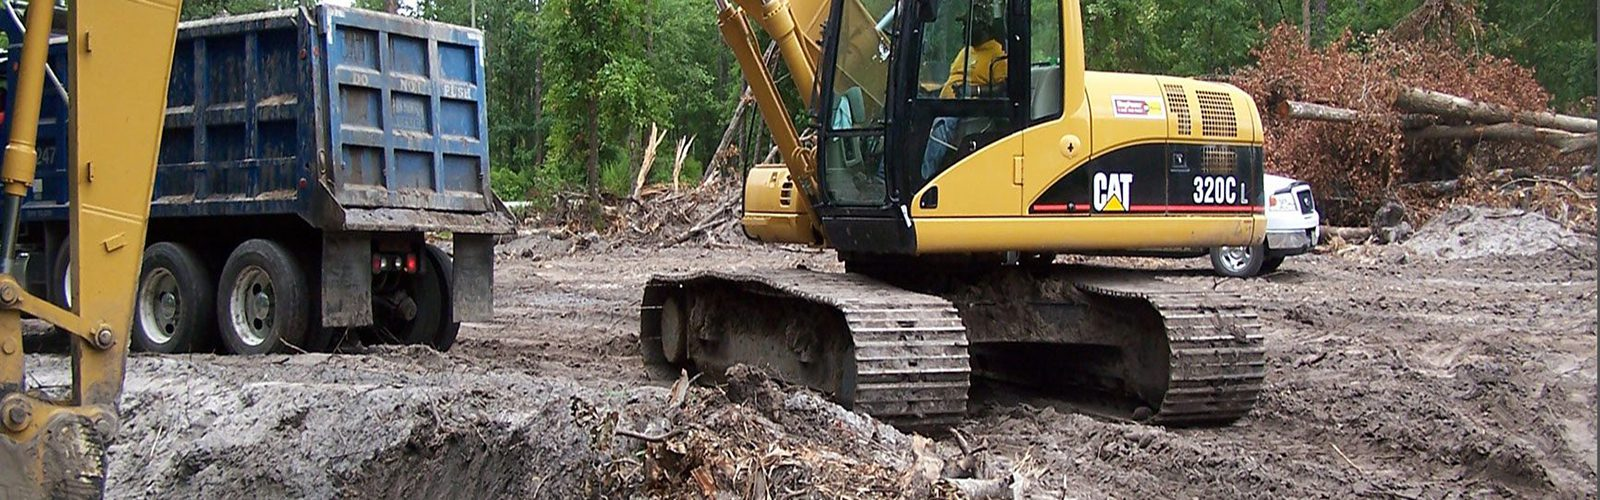 Digger equipment moving earth